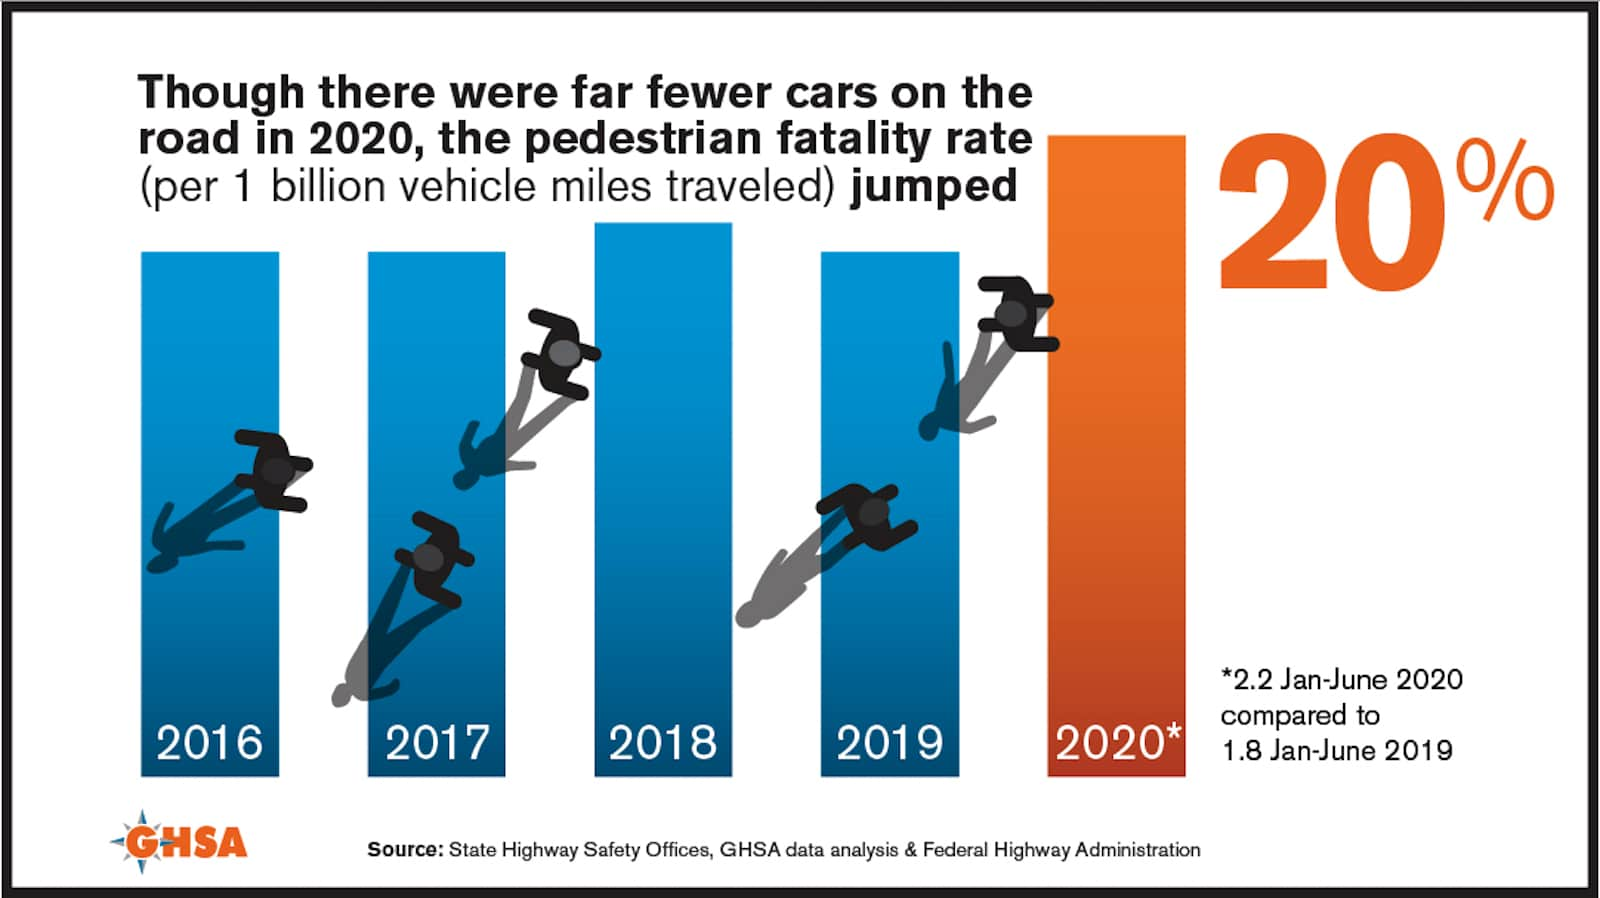 2020 pedestrian fatality rate graphic